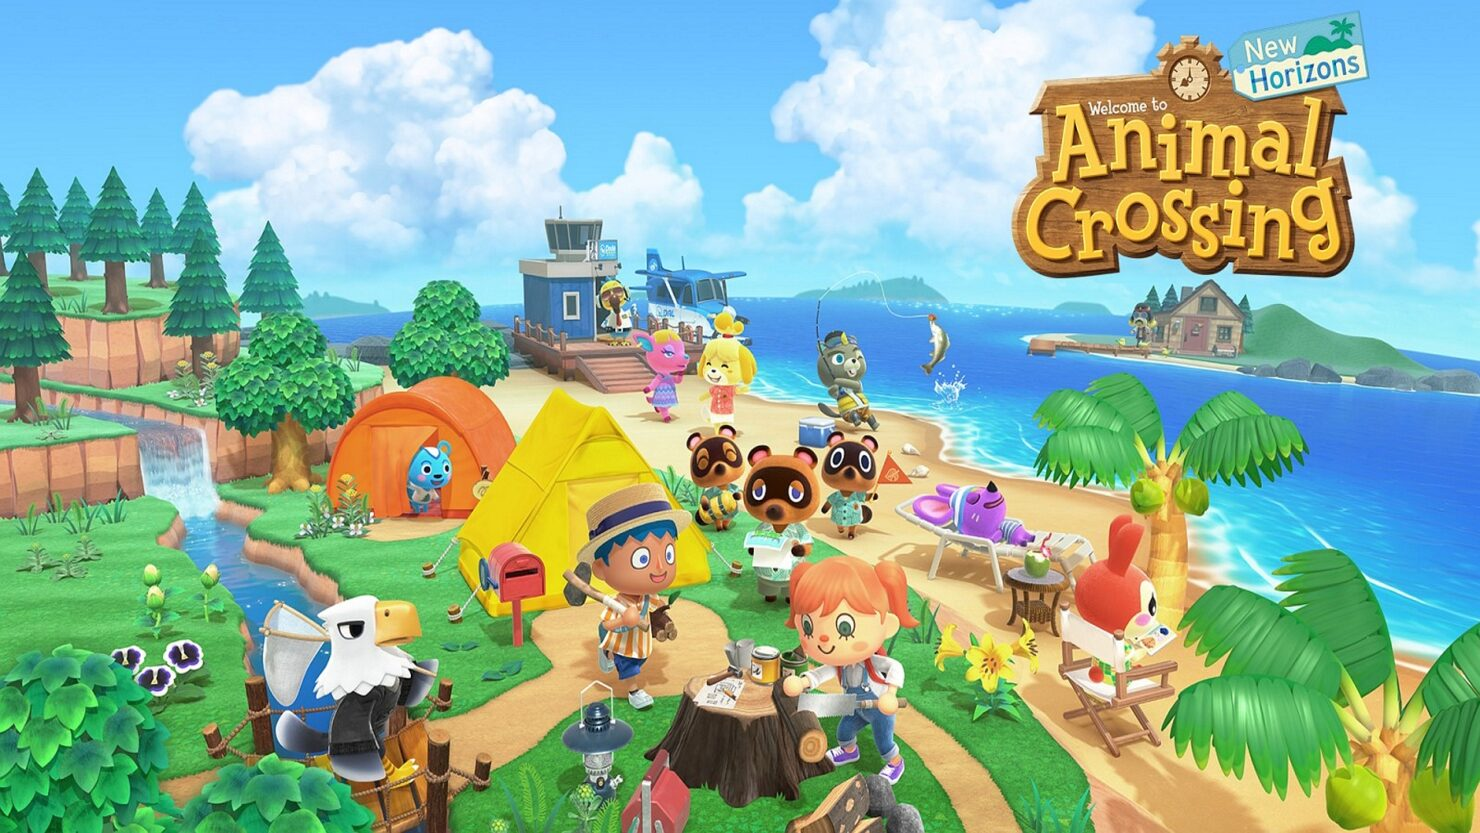 Animal Crossing New Horizons patch 1.1